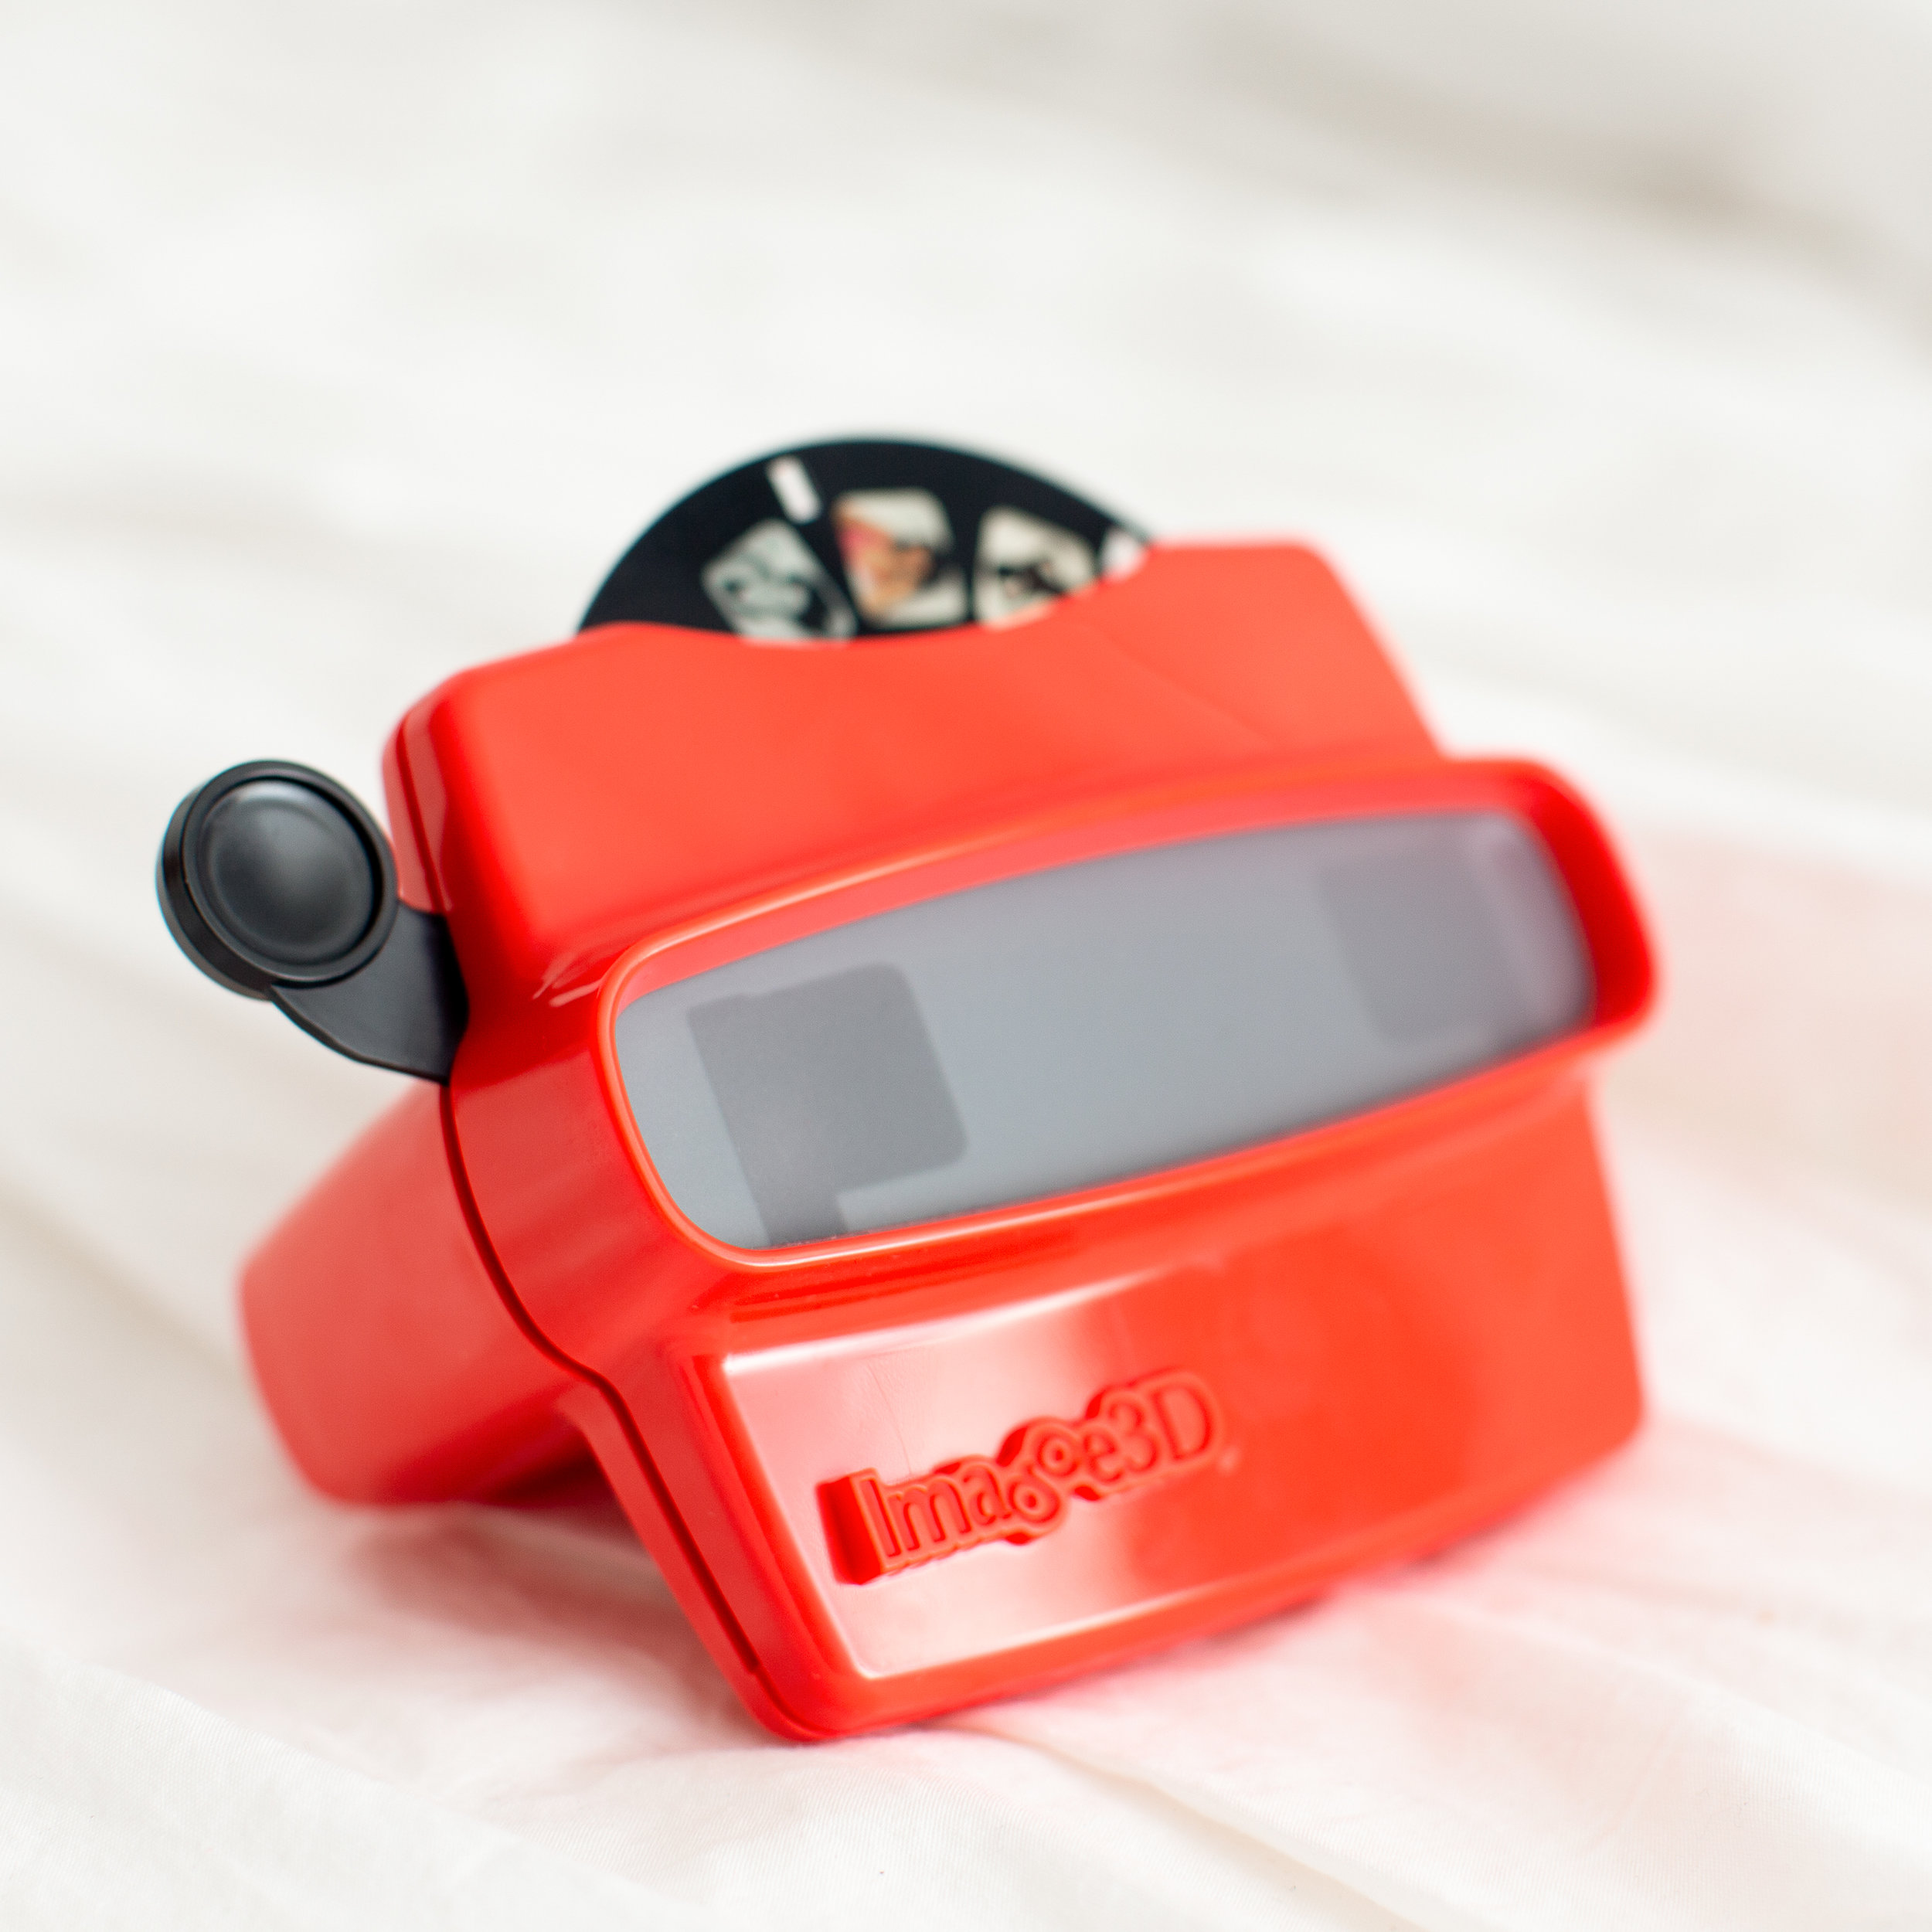 VIEWFINDER - Red viewfinder with photo diskIncludes 7 images + cover imageAdd on to any collection for $250Fun retro gift!